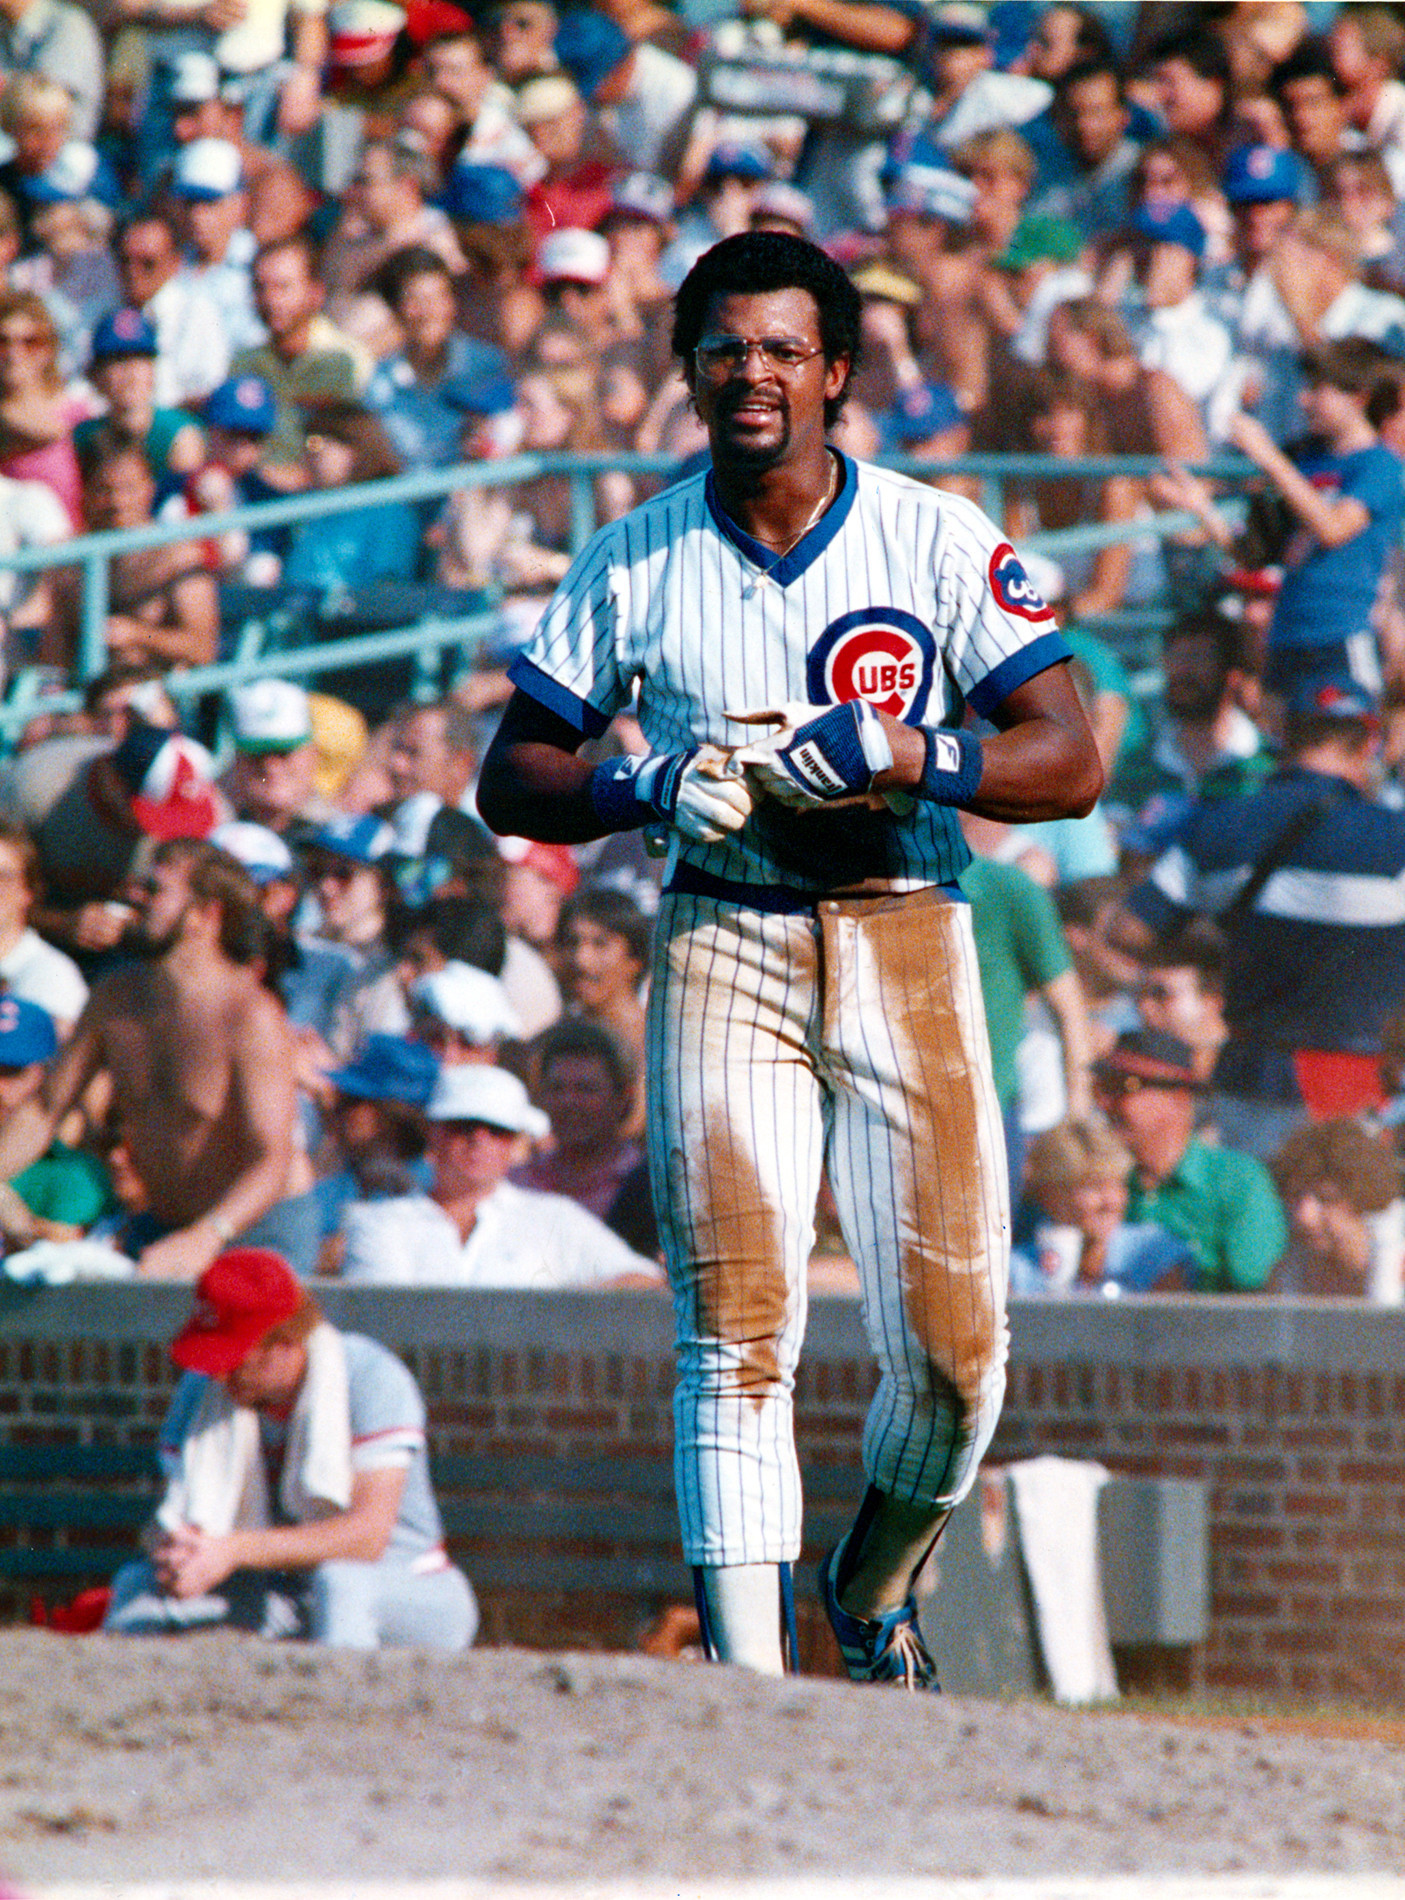 Leon Durham walks back to the dugout during a game.